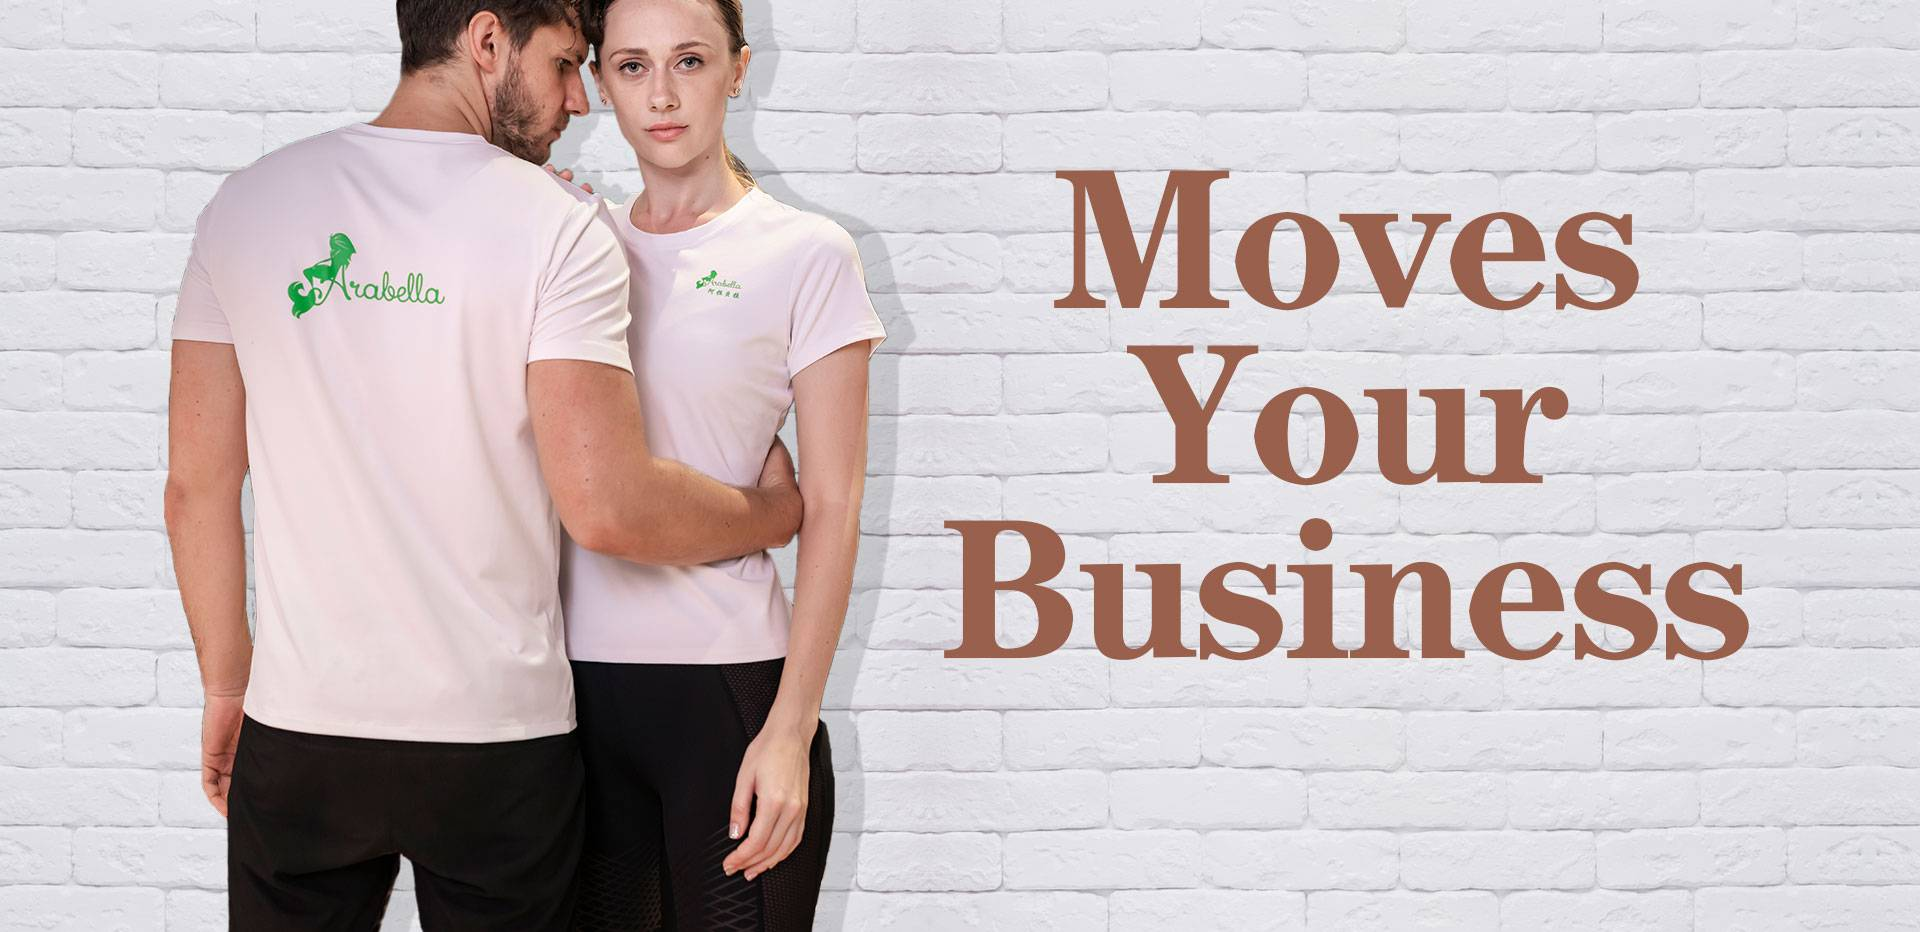 banneri-Moves-Your-Business